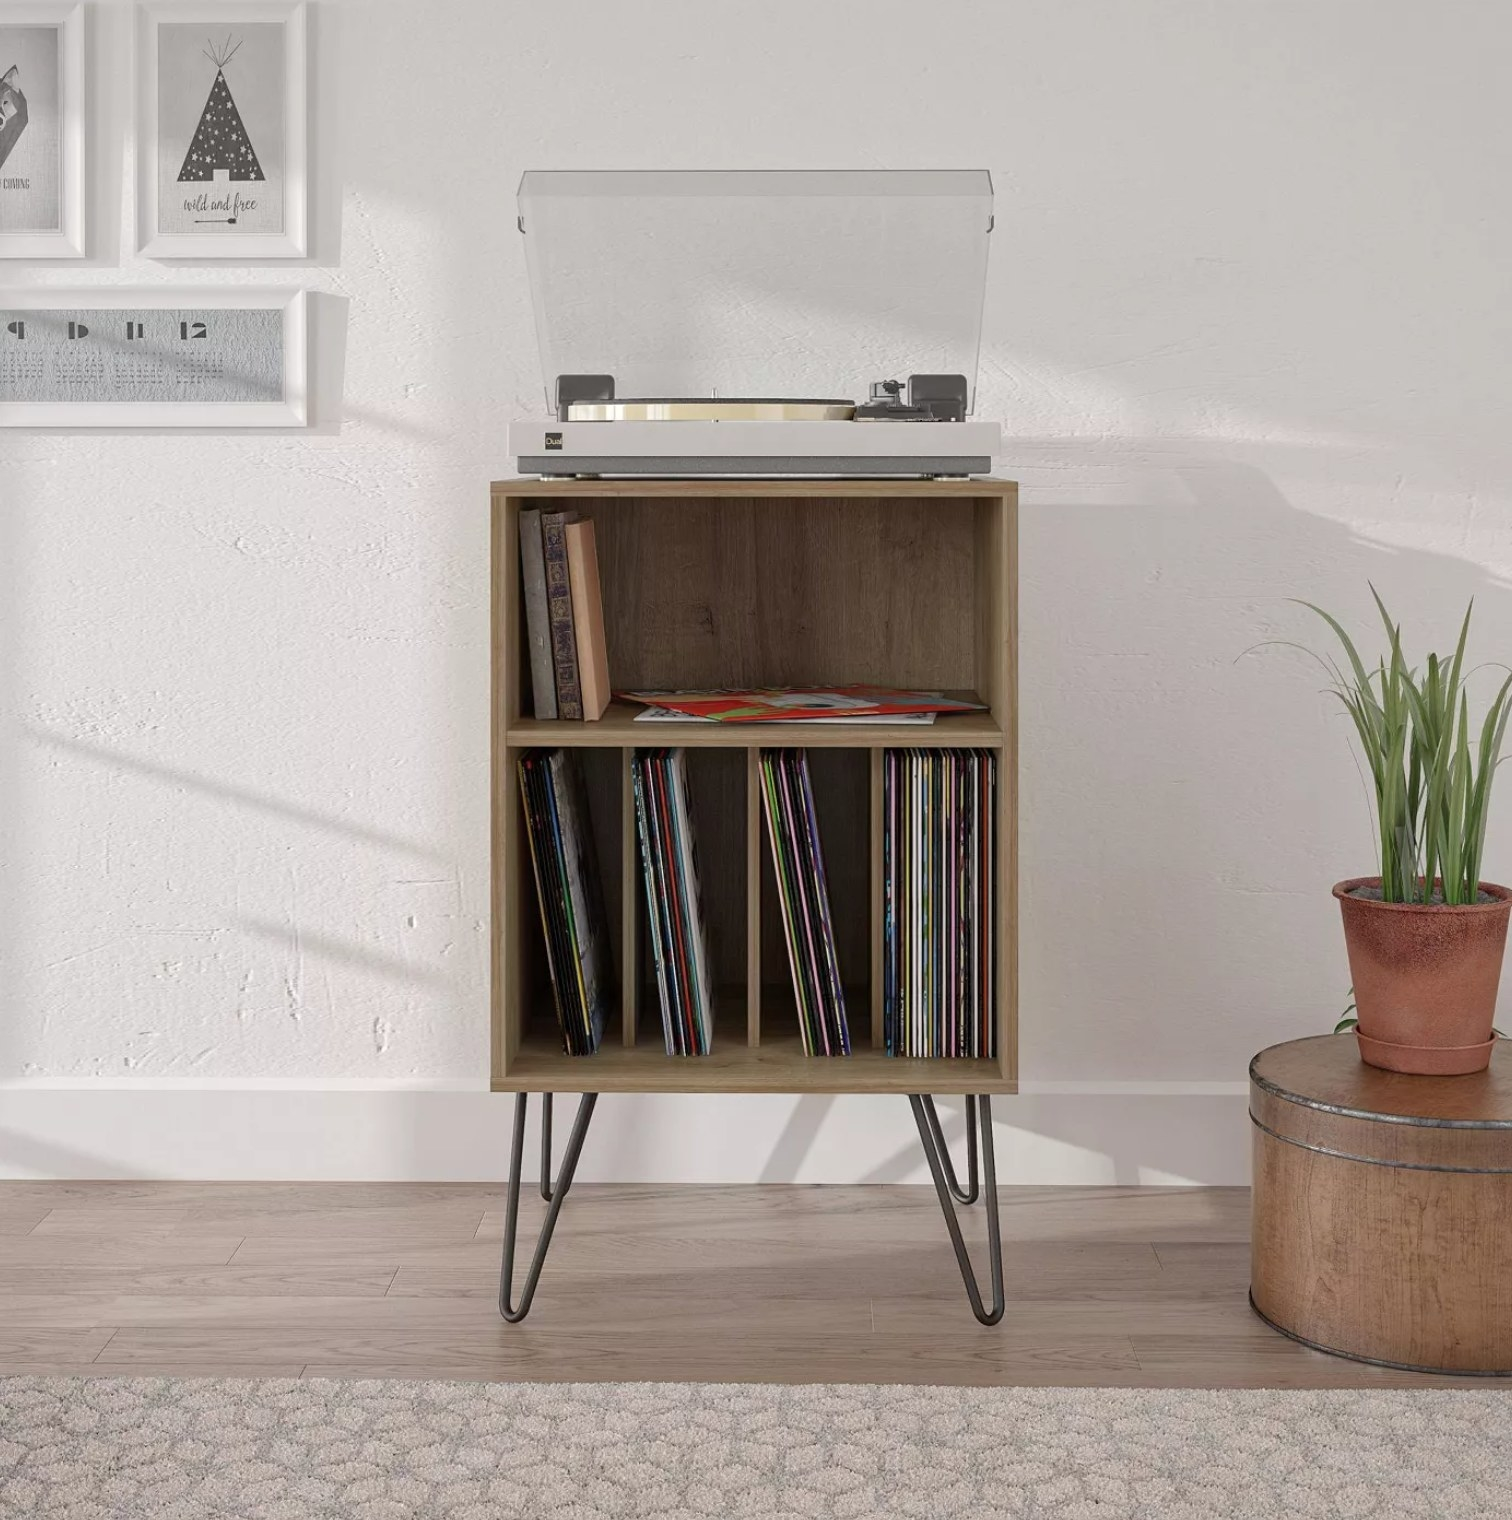 The record stand with vinyls and a record player on top